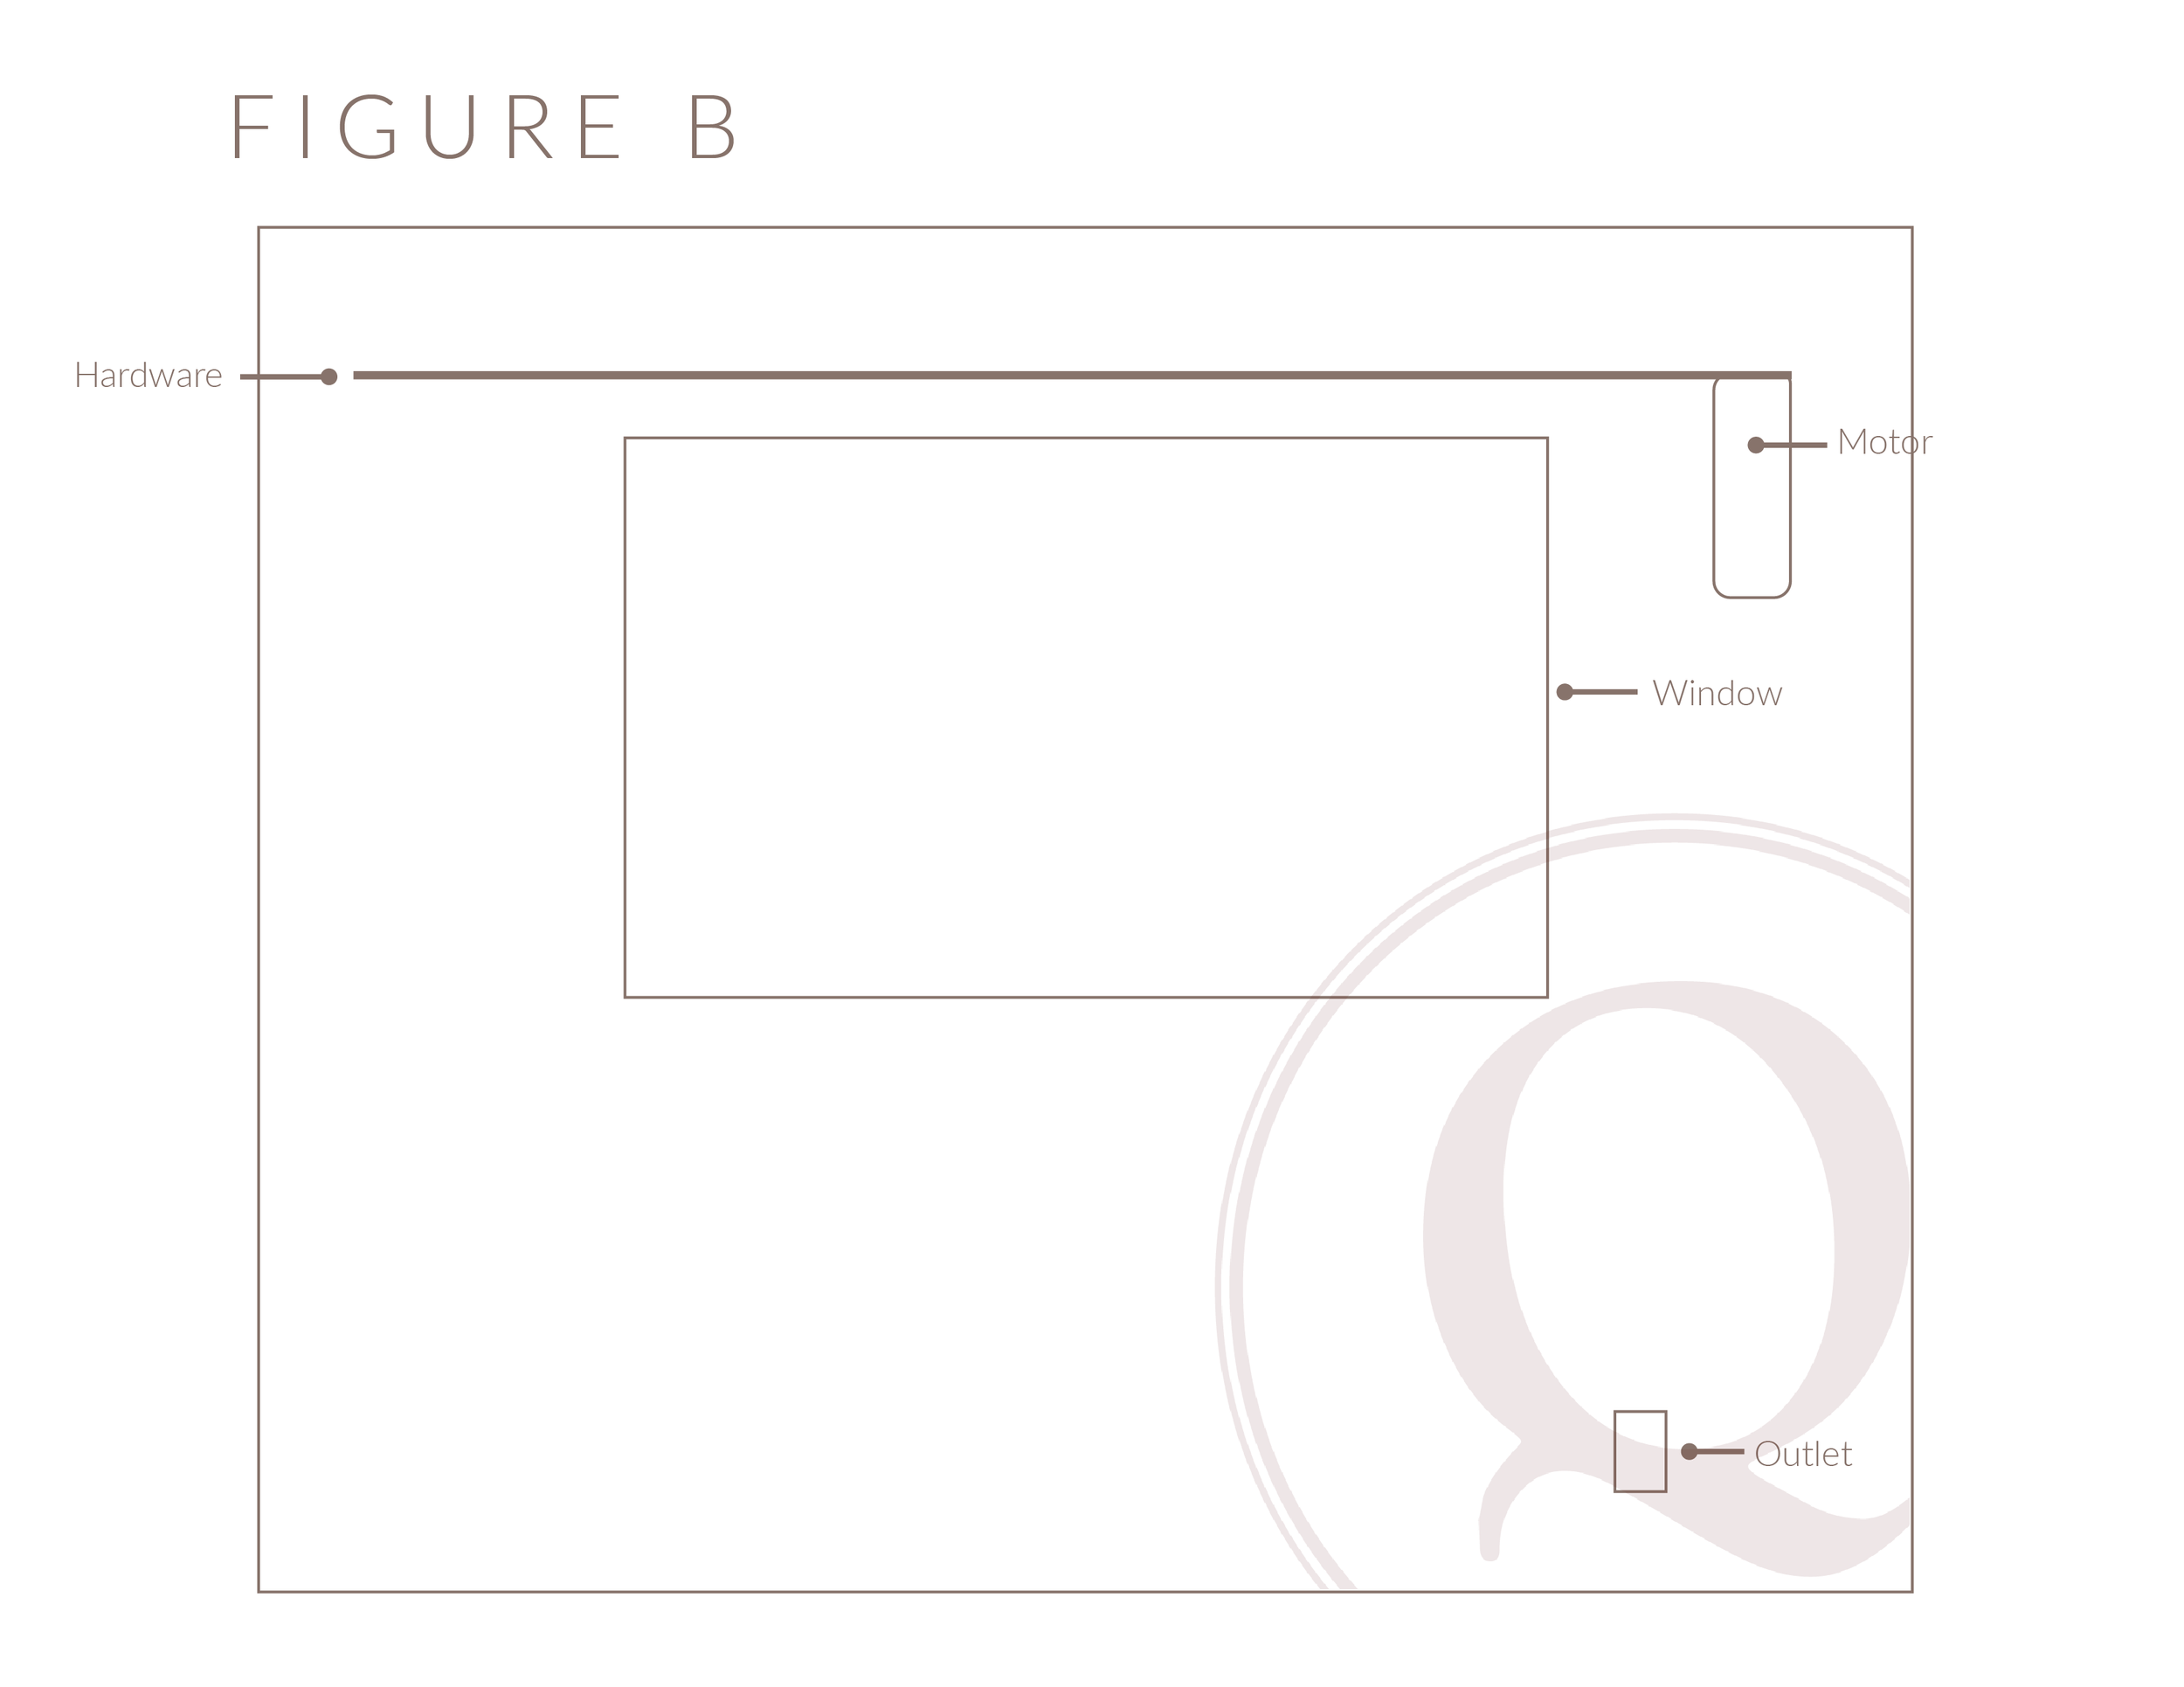 Figure B shows a Motorized Drapery motor on the right side of the hardware with a corresponding outlet location.